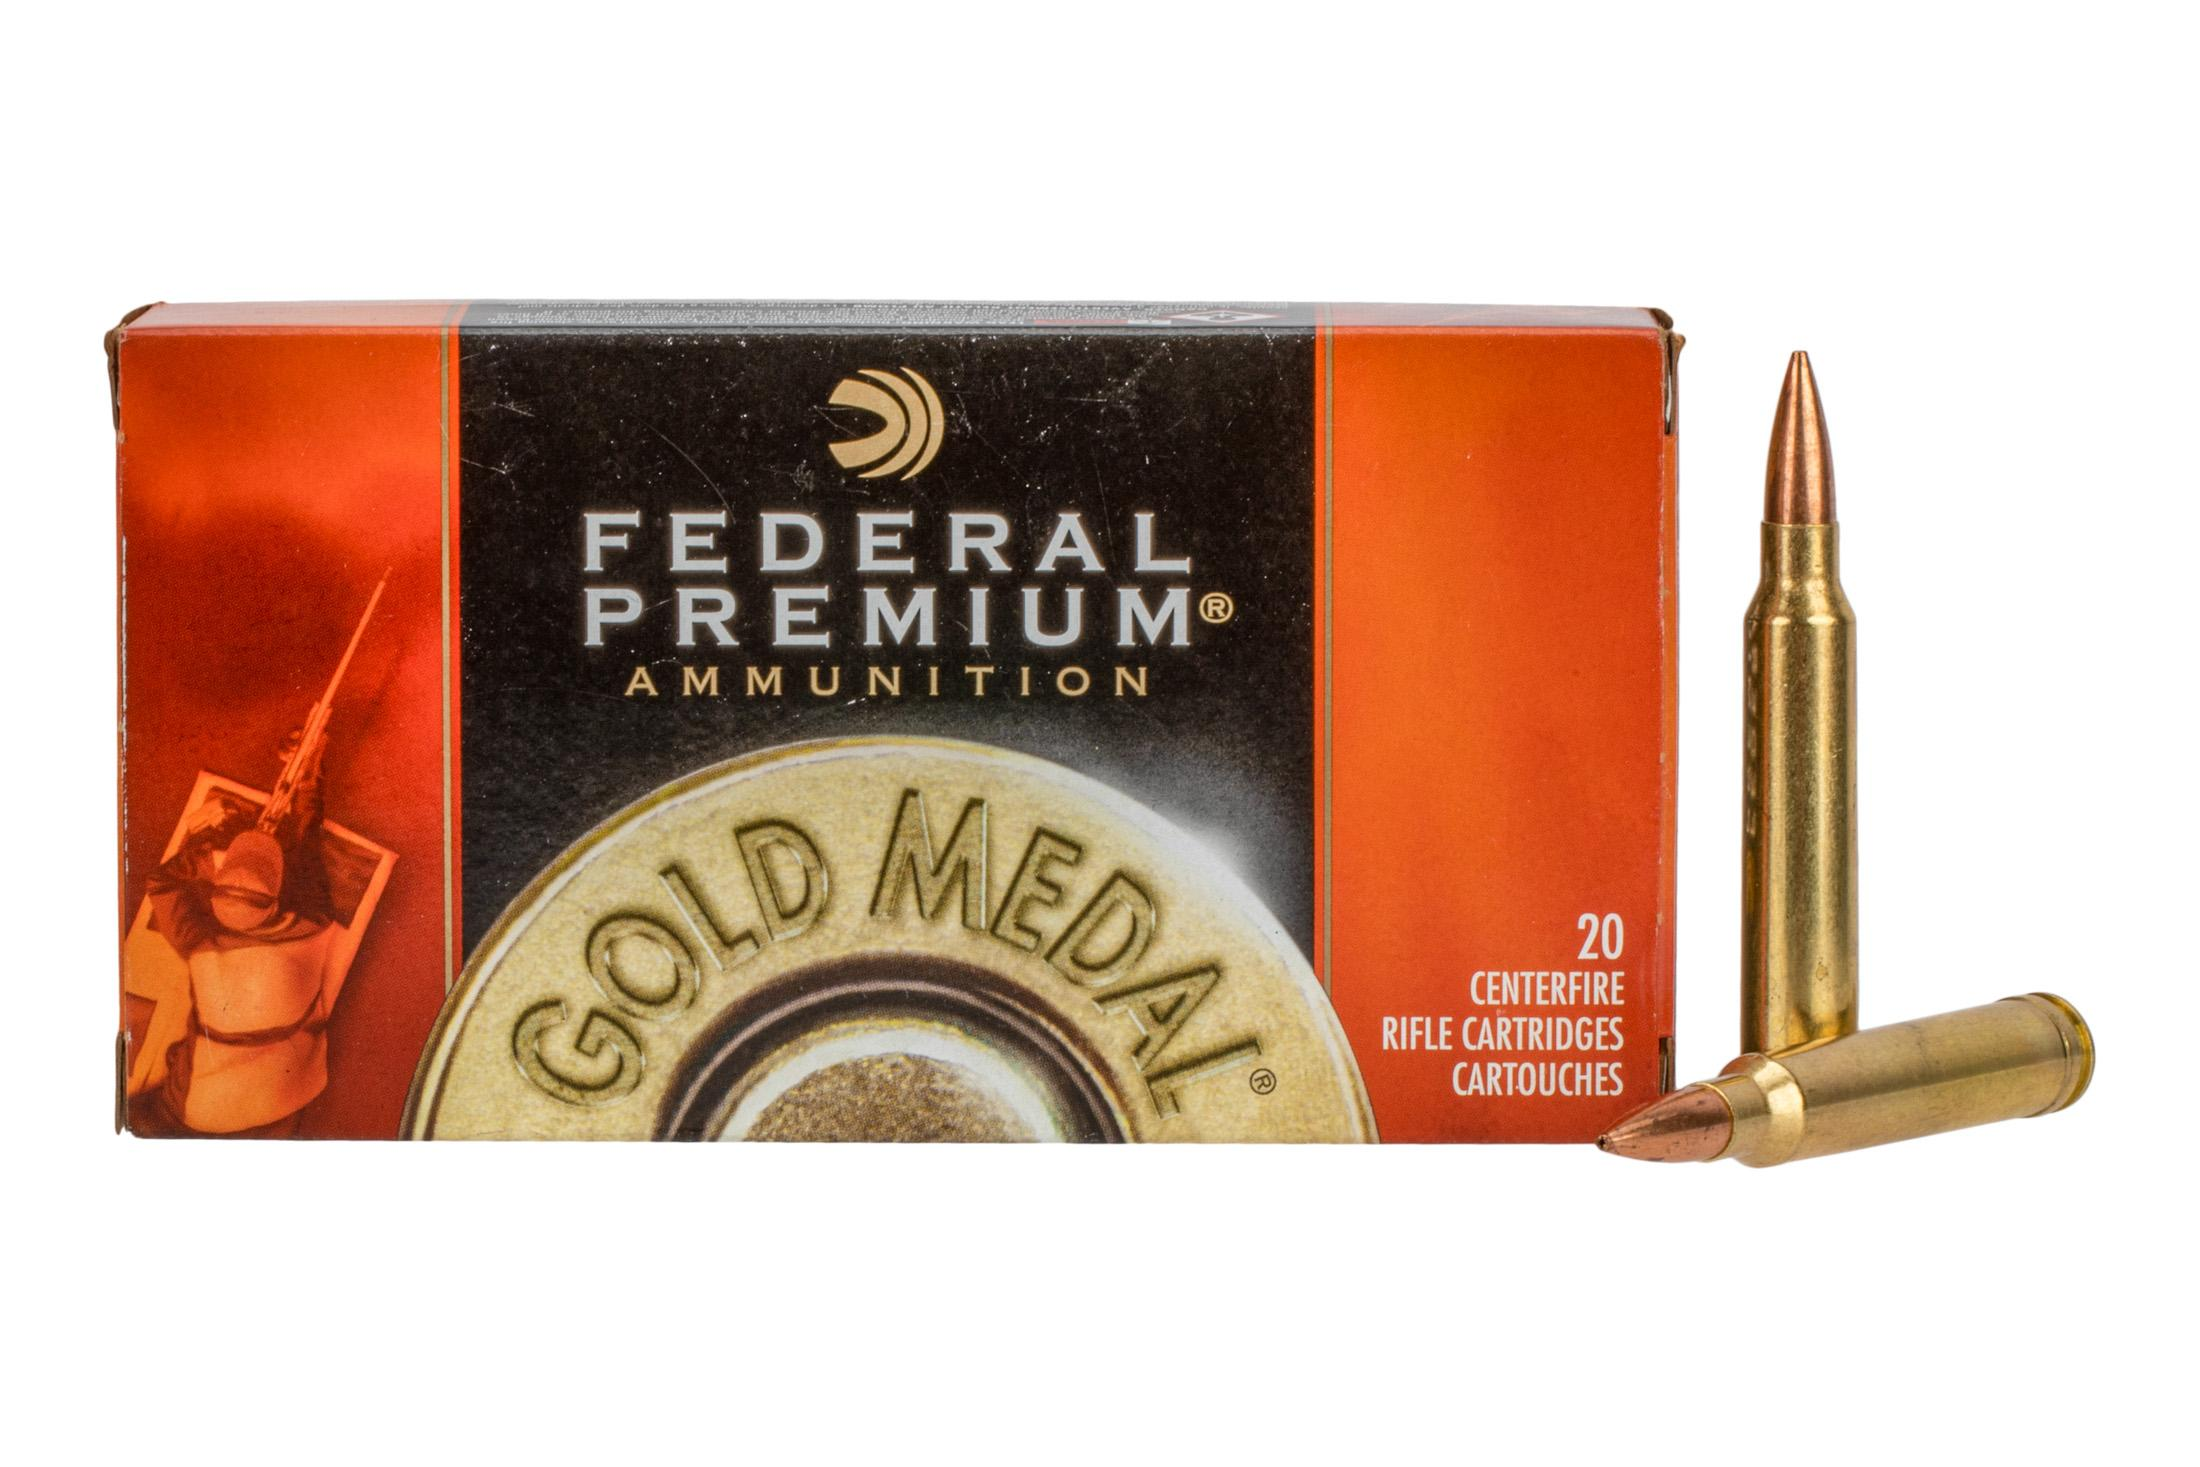 .300 win mag ammo for sale